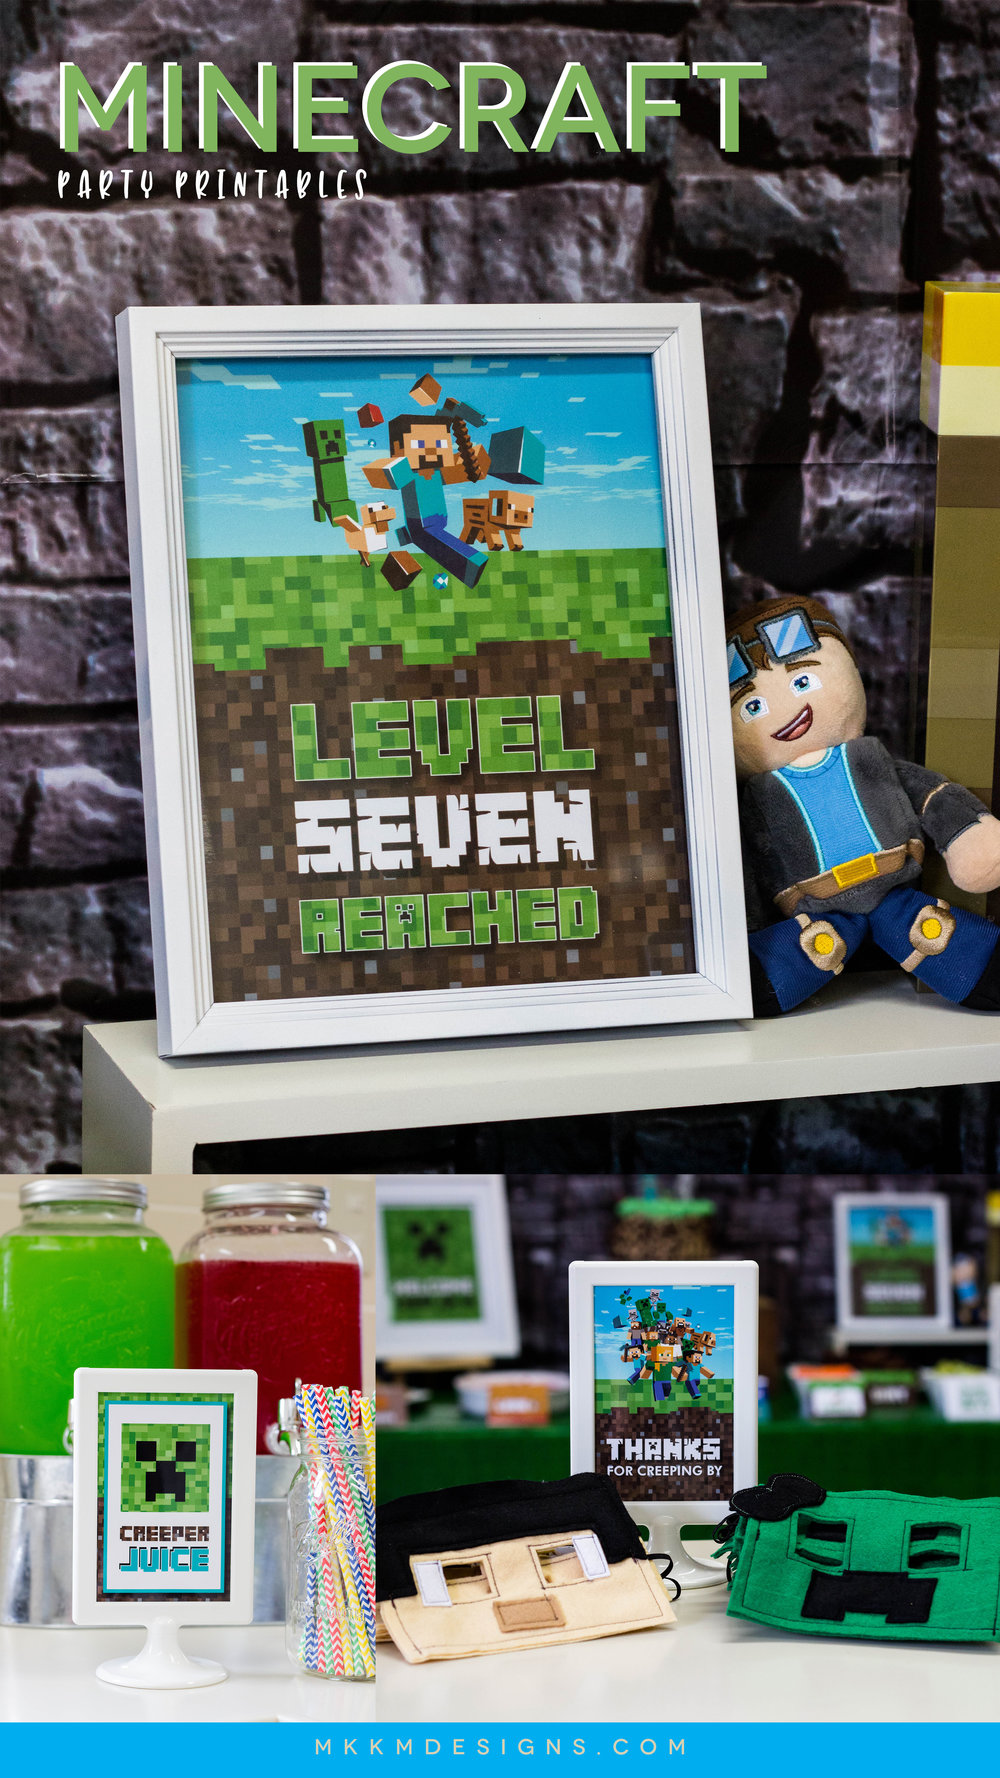 Minecraft Party Printables, Grab some free Minecraft birthday party decor and get some tips on decorating for a Minecraft Birthday Party // mkkmdesigns.com